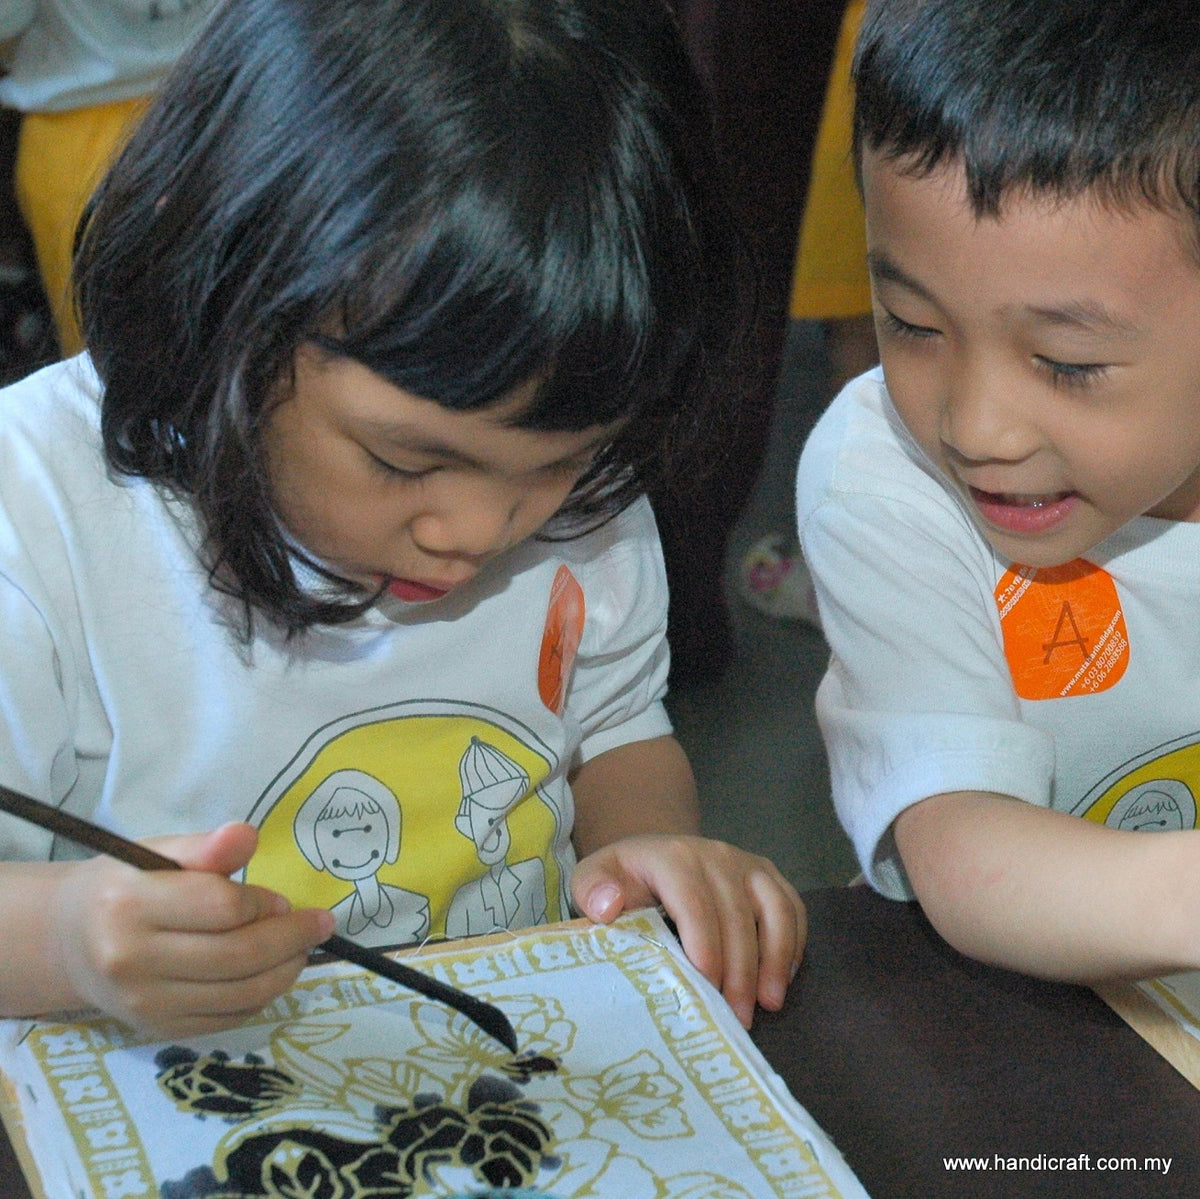 Let you kids be explore new crafts at home - batik coloring